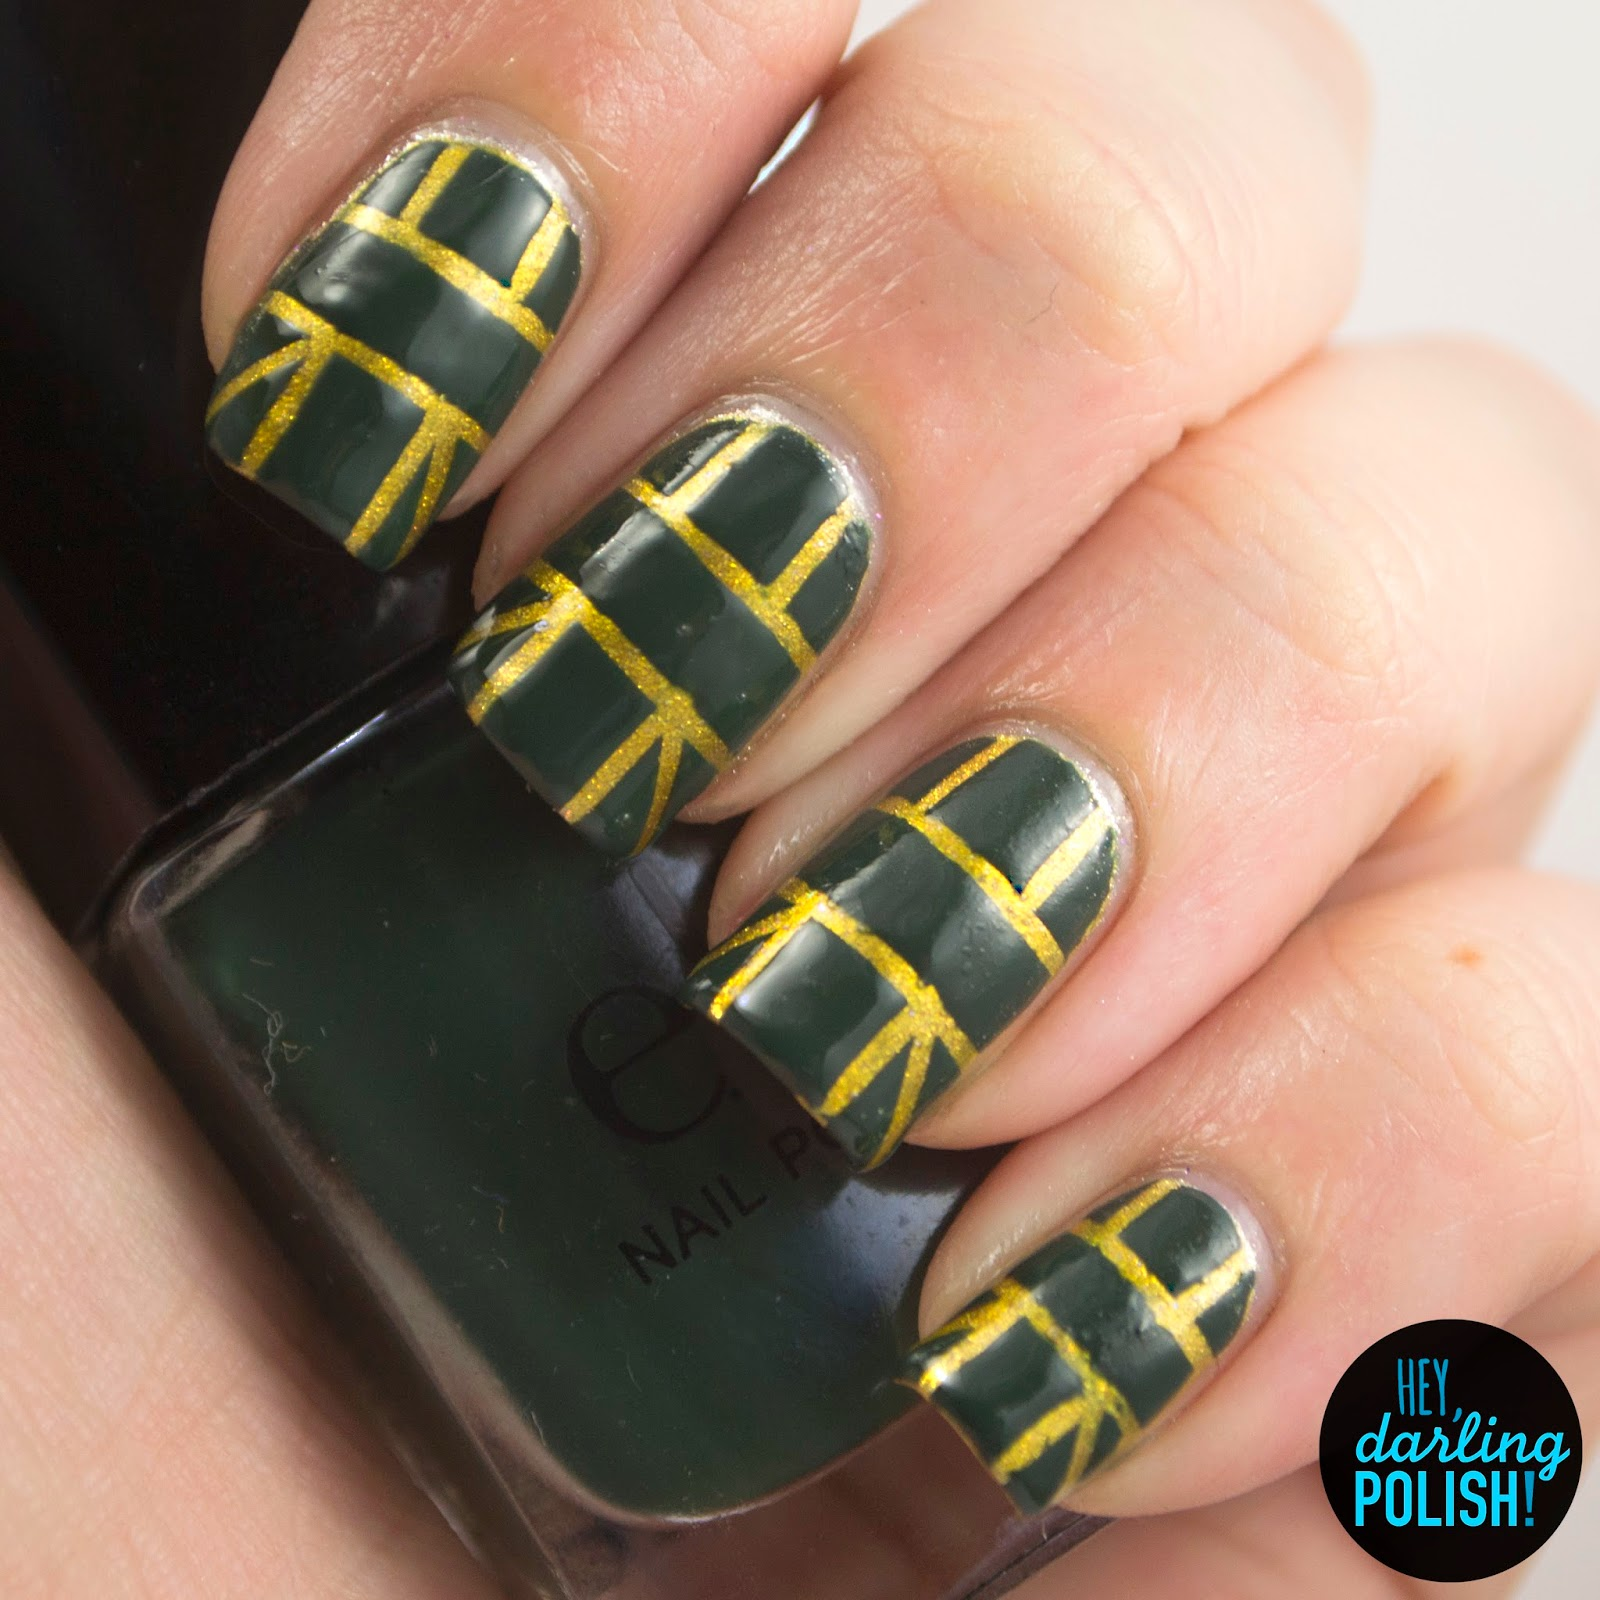 nails, nail art, nail polish, polish, emerald, gold, green, tape, hey darling polish, nail art ideas linkup